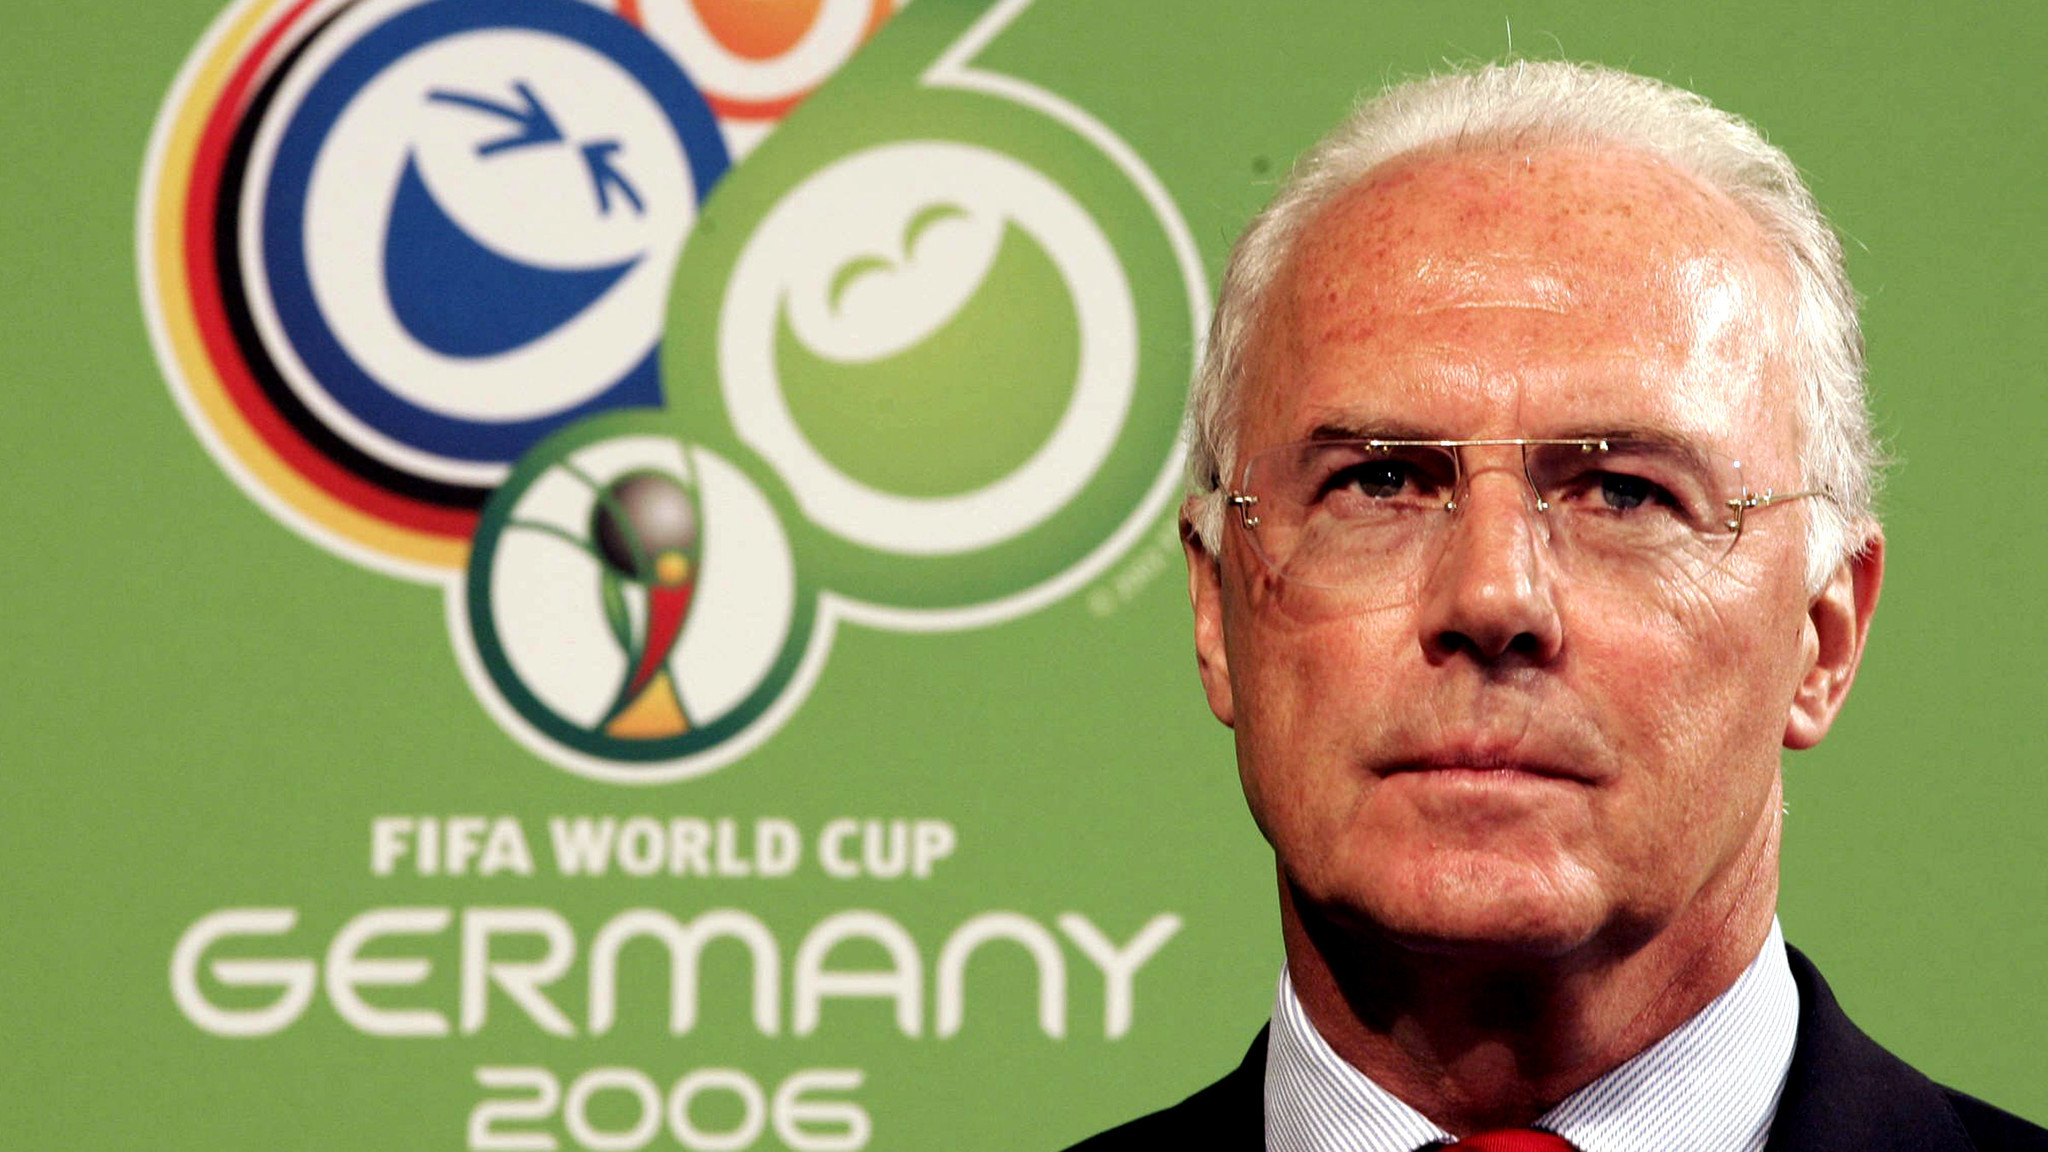 German great Franz Beckenbauer tar ed in FIFA ethics